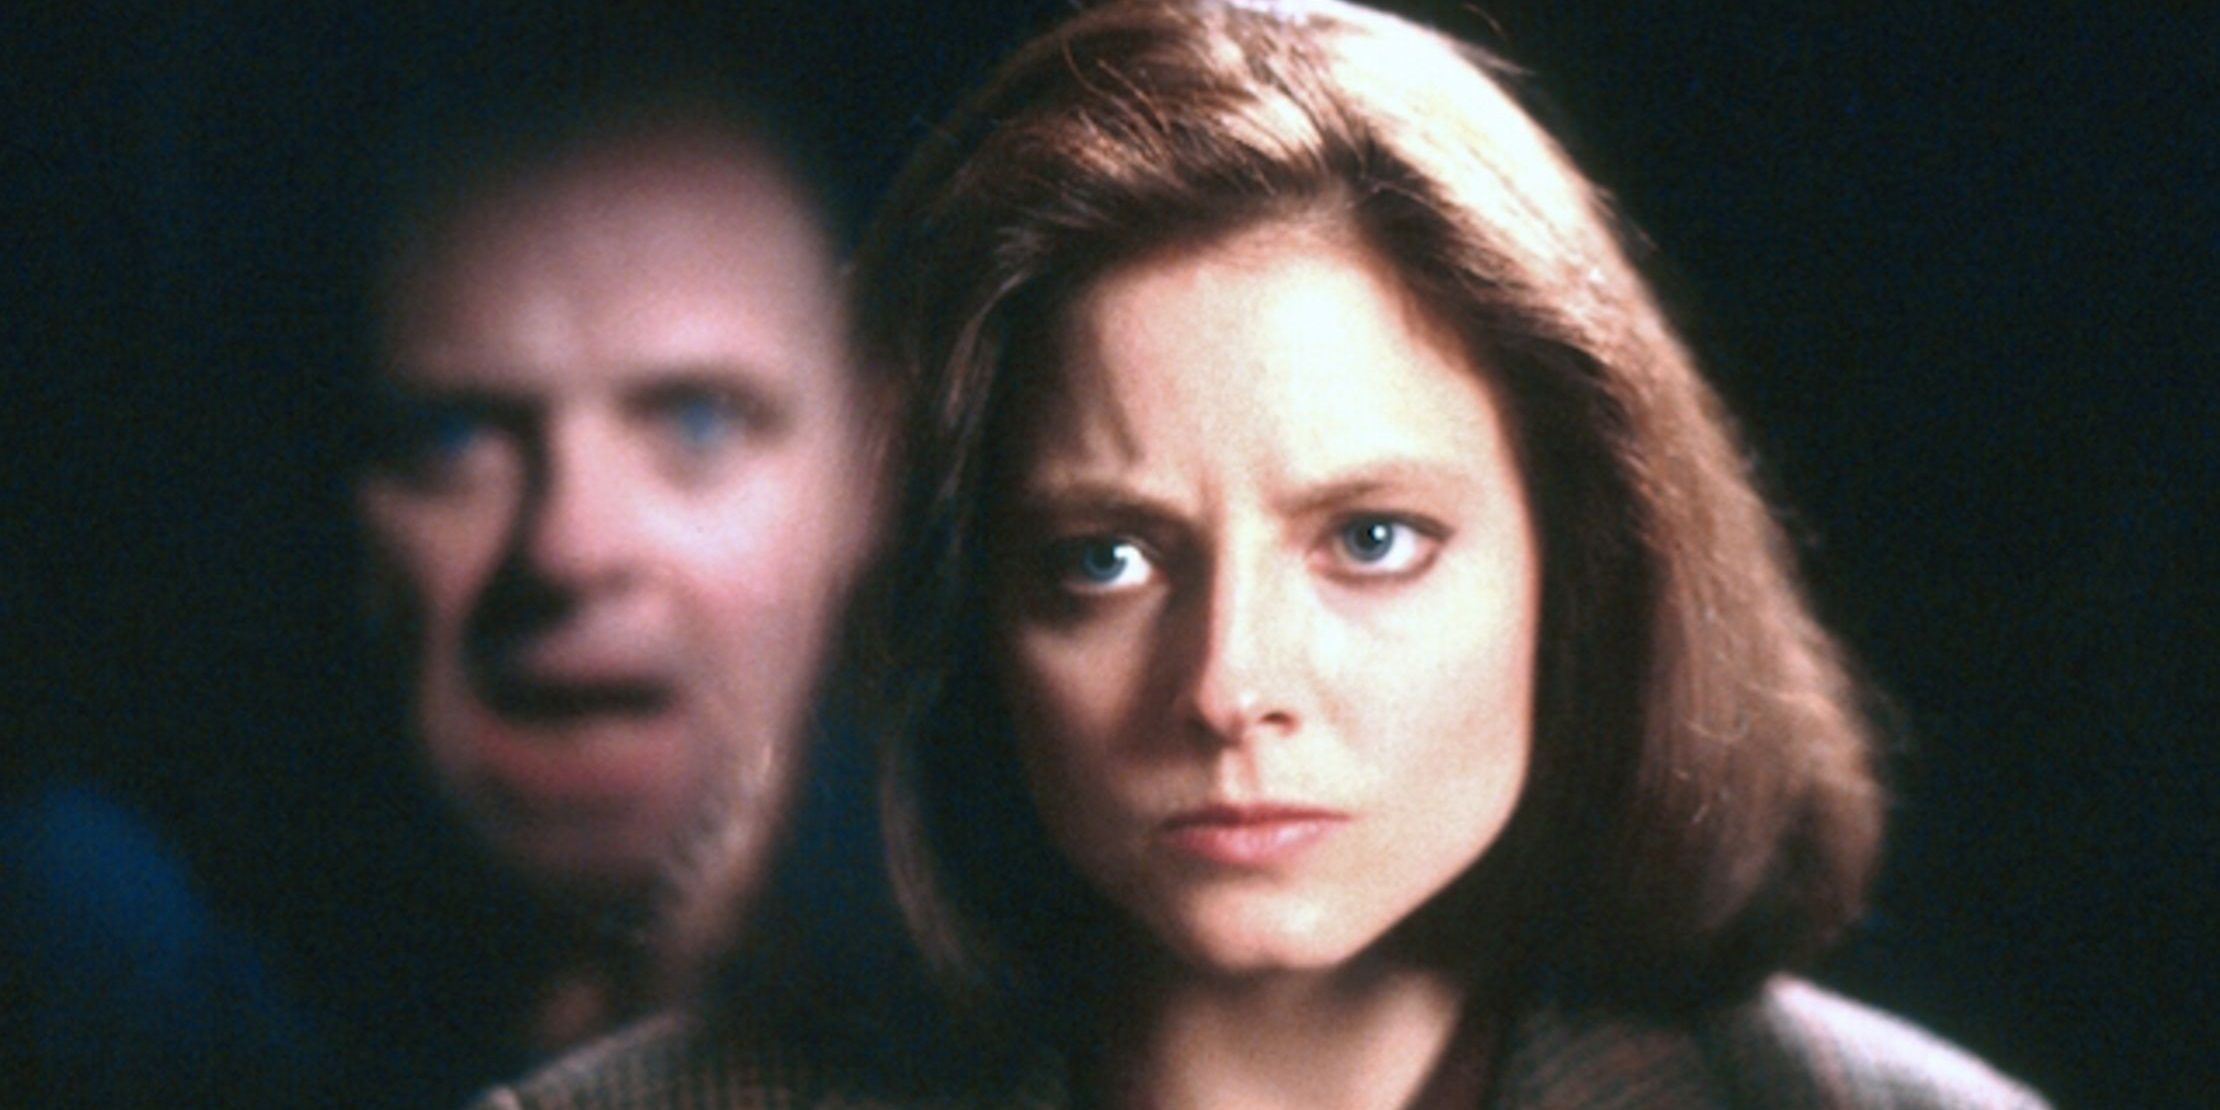 Is Silence Of The Lambs On Netflix, Hulu Or Prime? Where To Watch Online